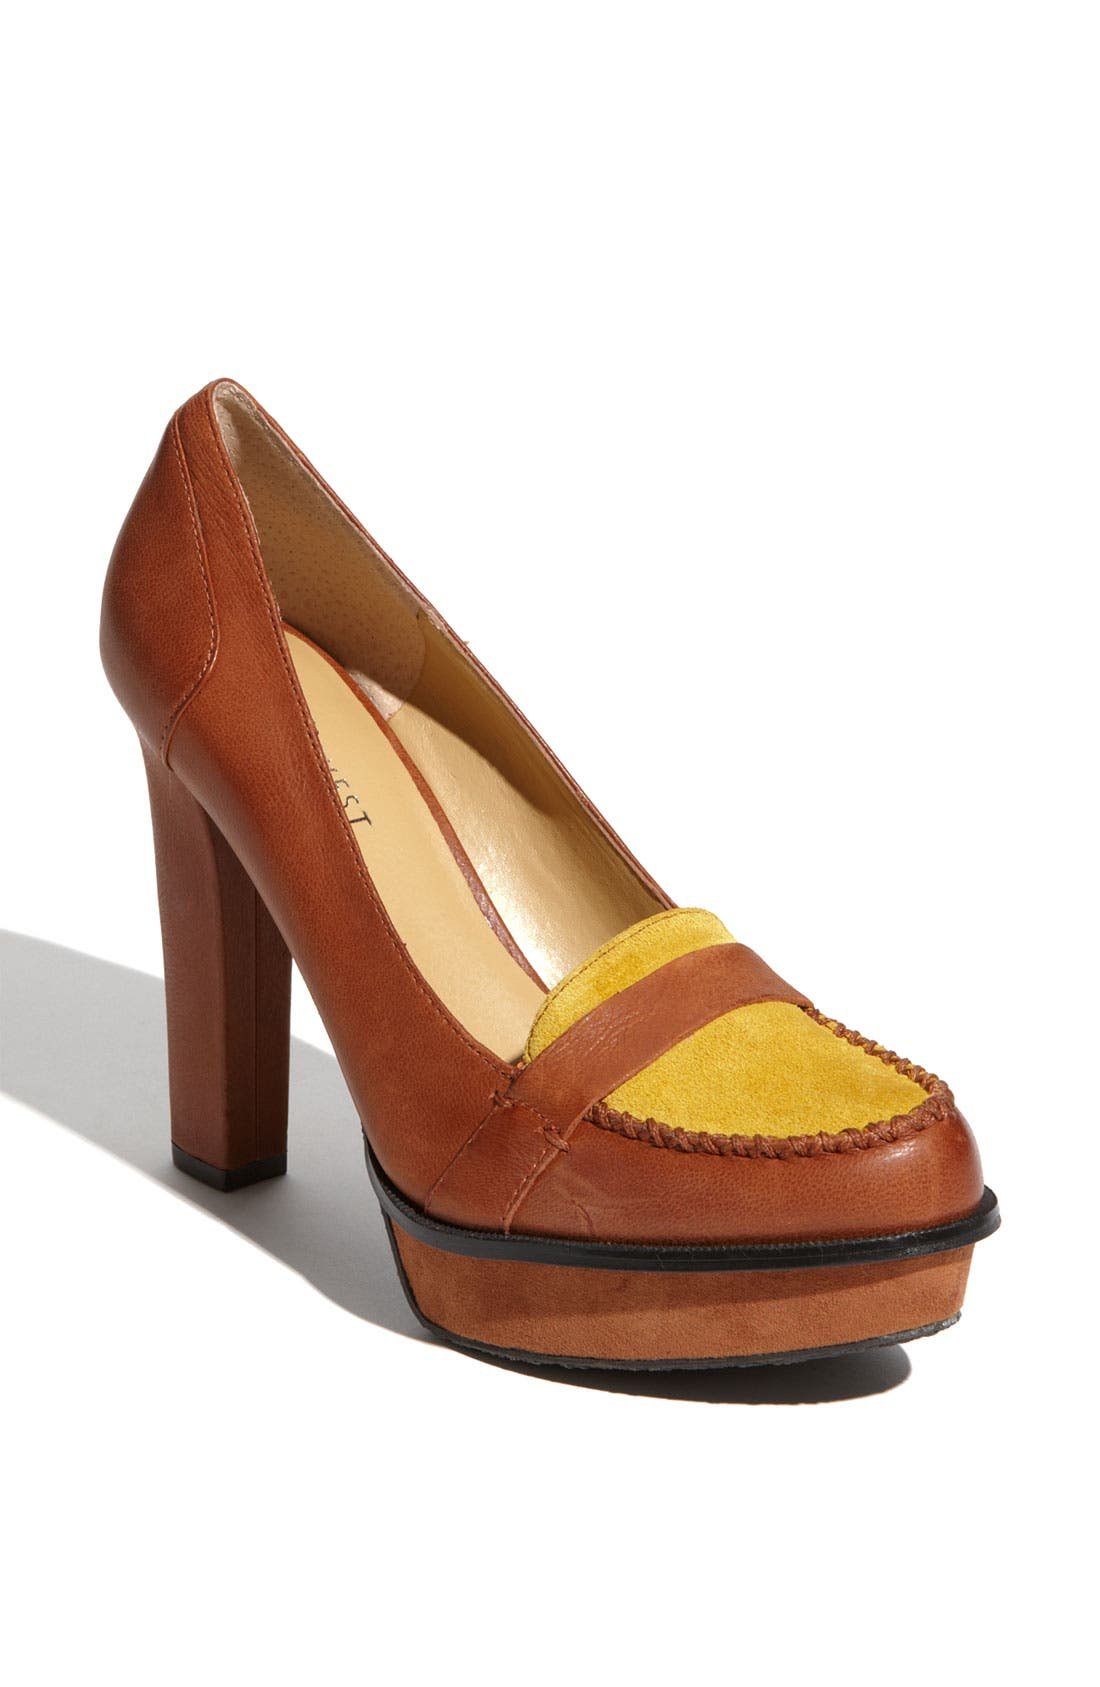 Alternate Image 1 Selected - Nine West 'Unmixed' Pump